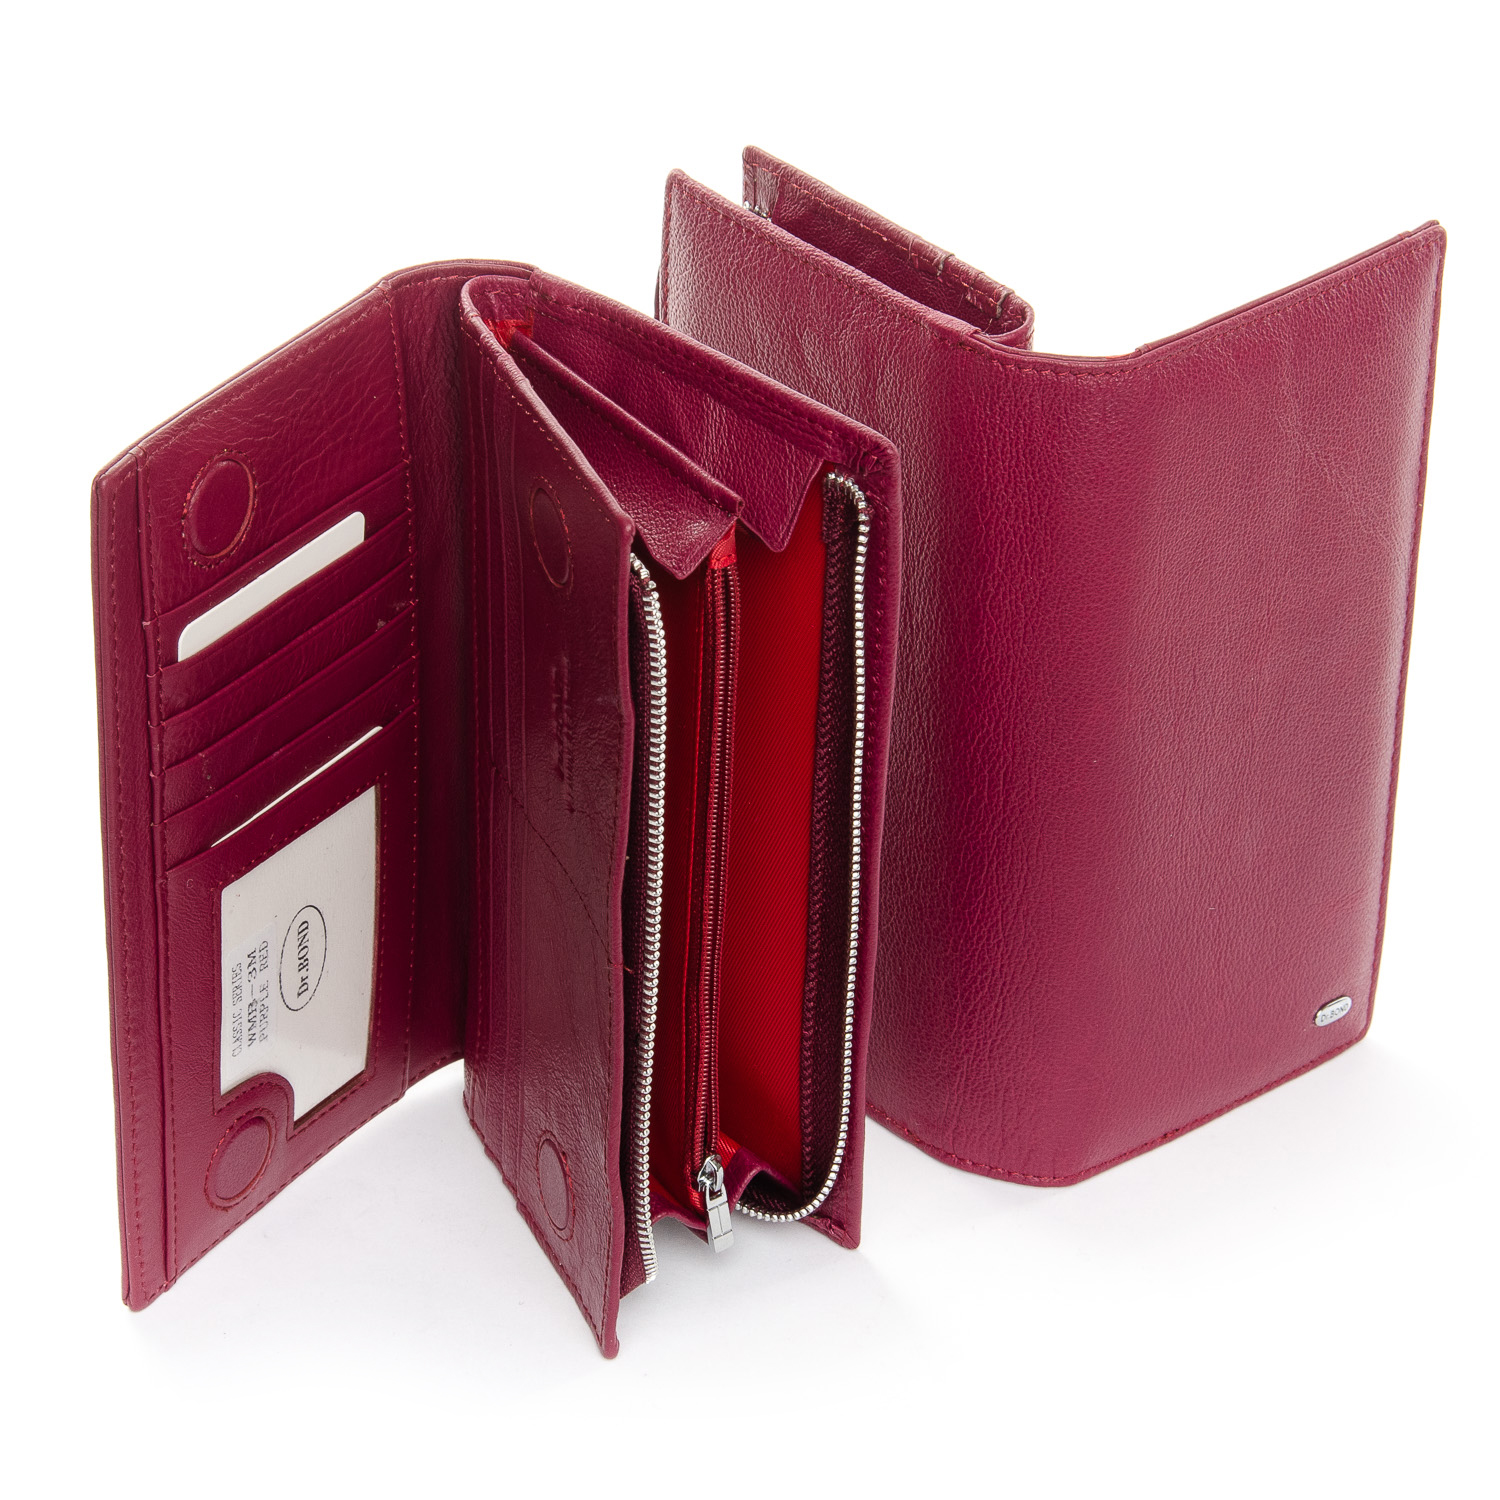 Кошелек Classic кожа DR. BOND WMB-3M plum-red - фото 4